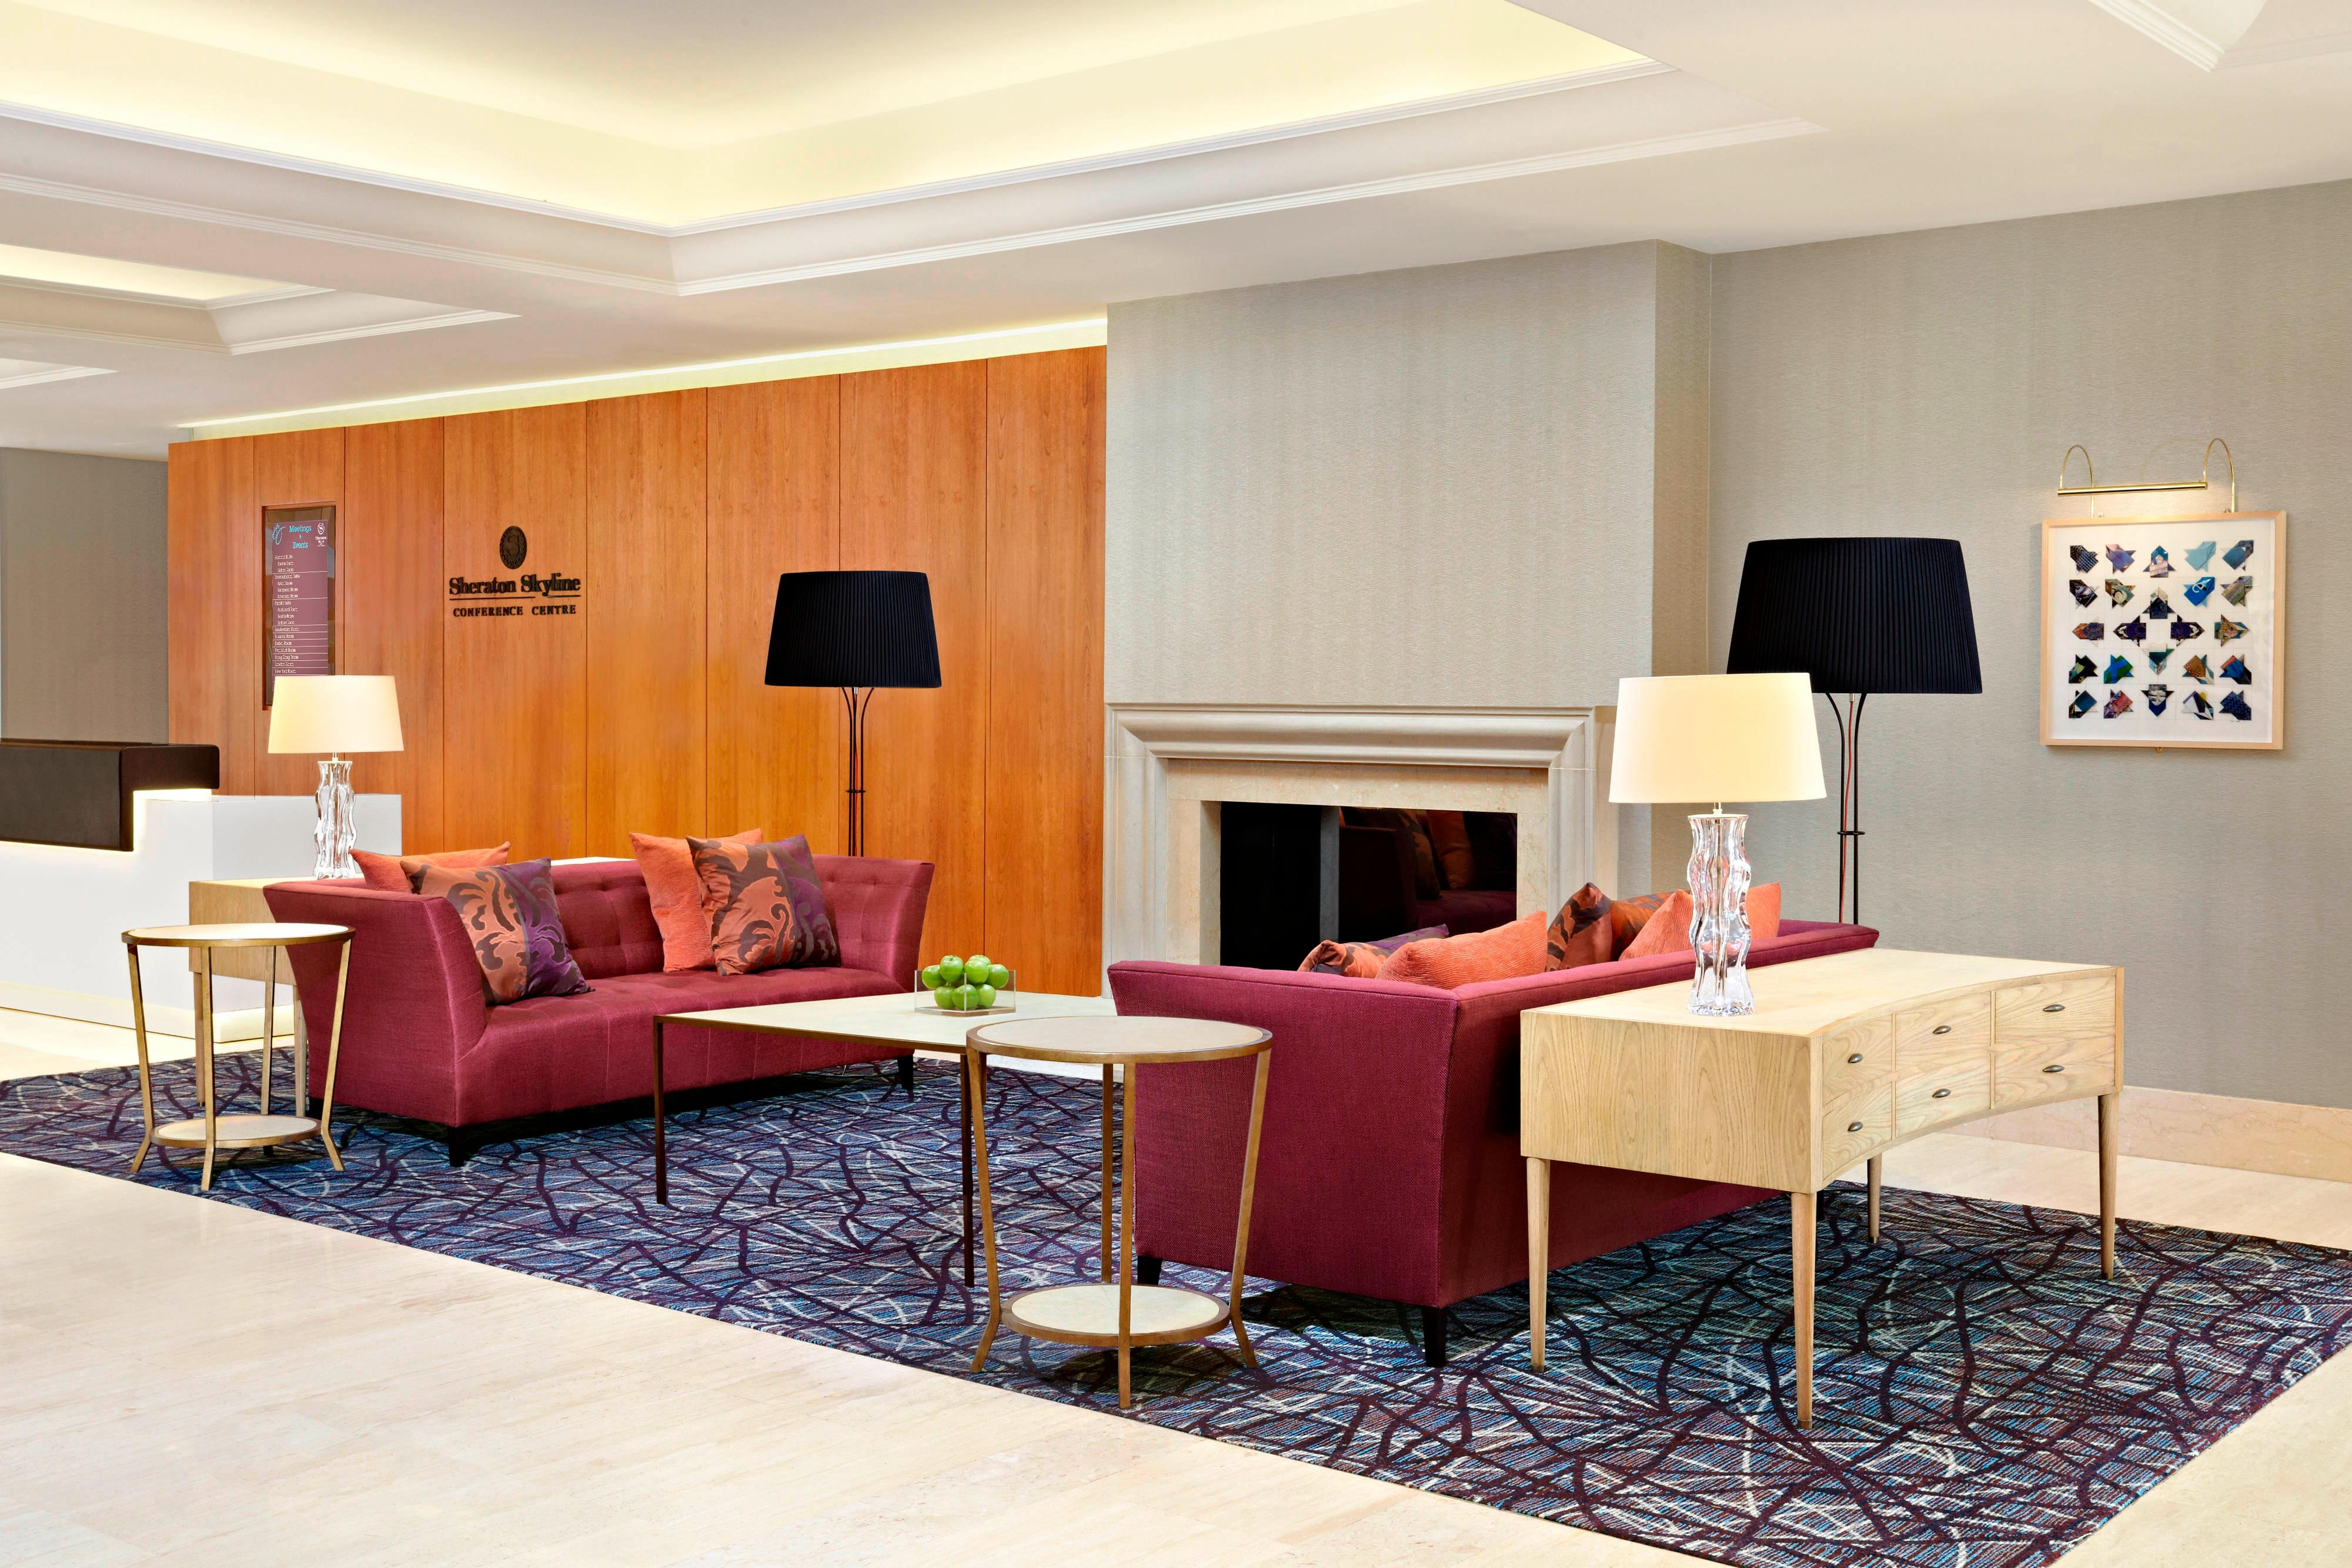 Conference Centre Lobby